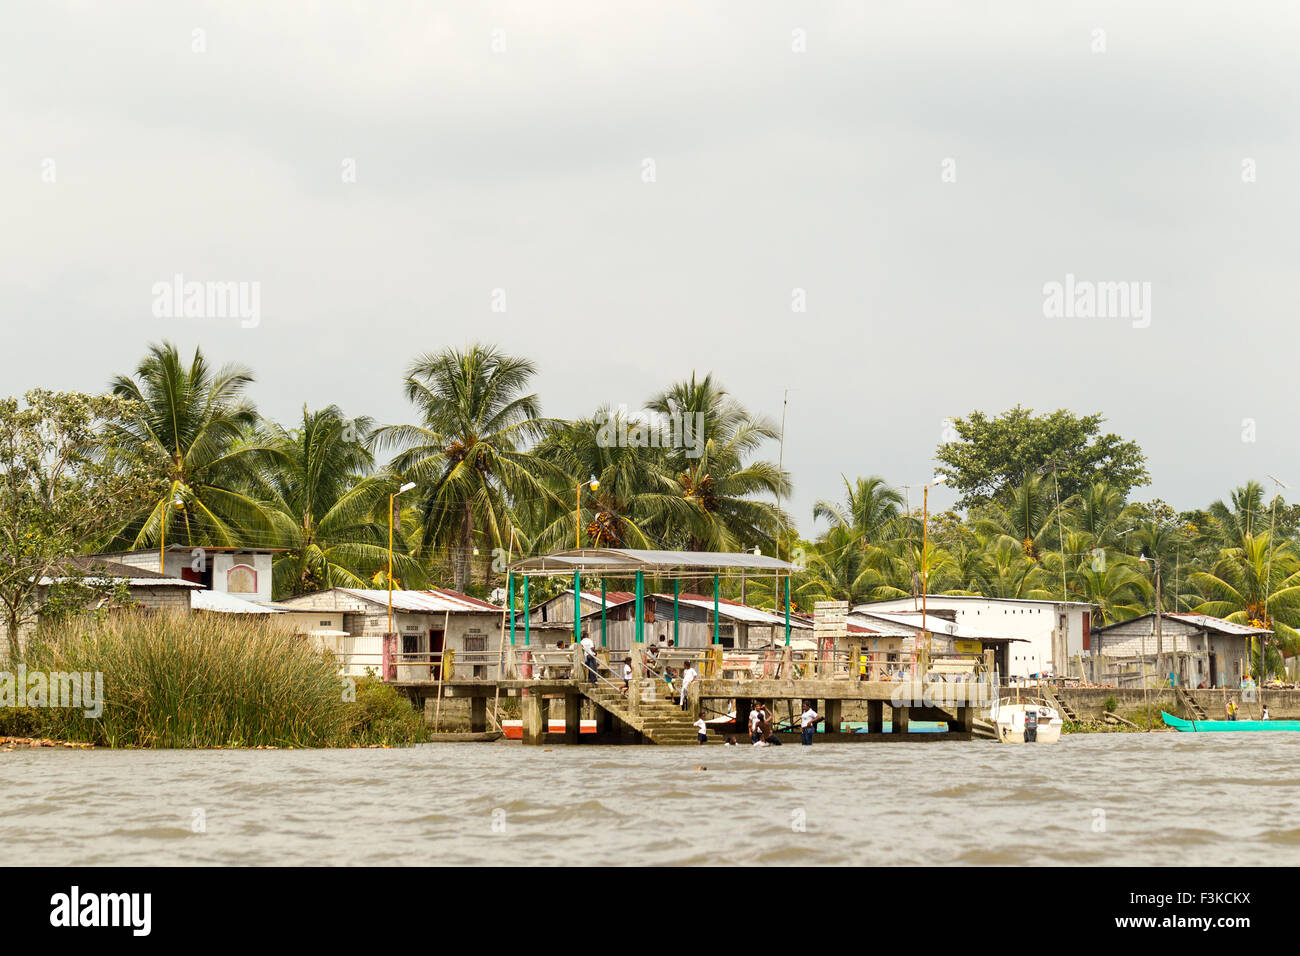 People Chilling Down On A Hot Summer Day In Ecuadorian Coast Village - Stock Image